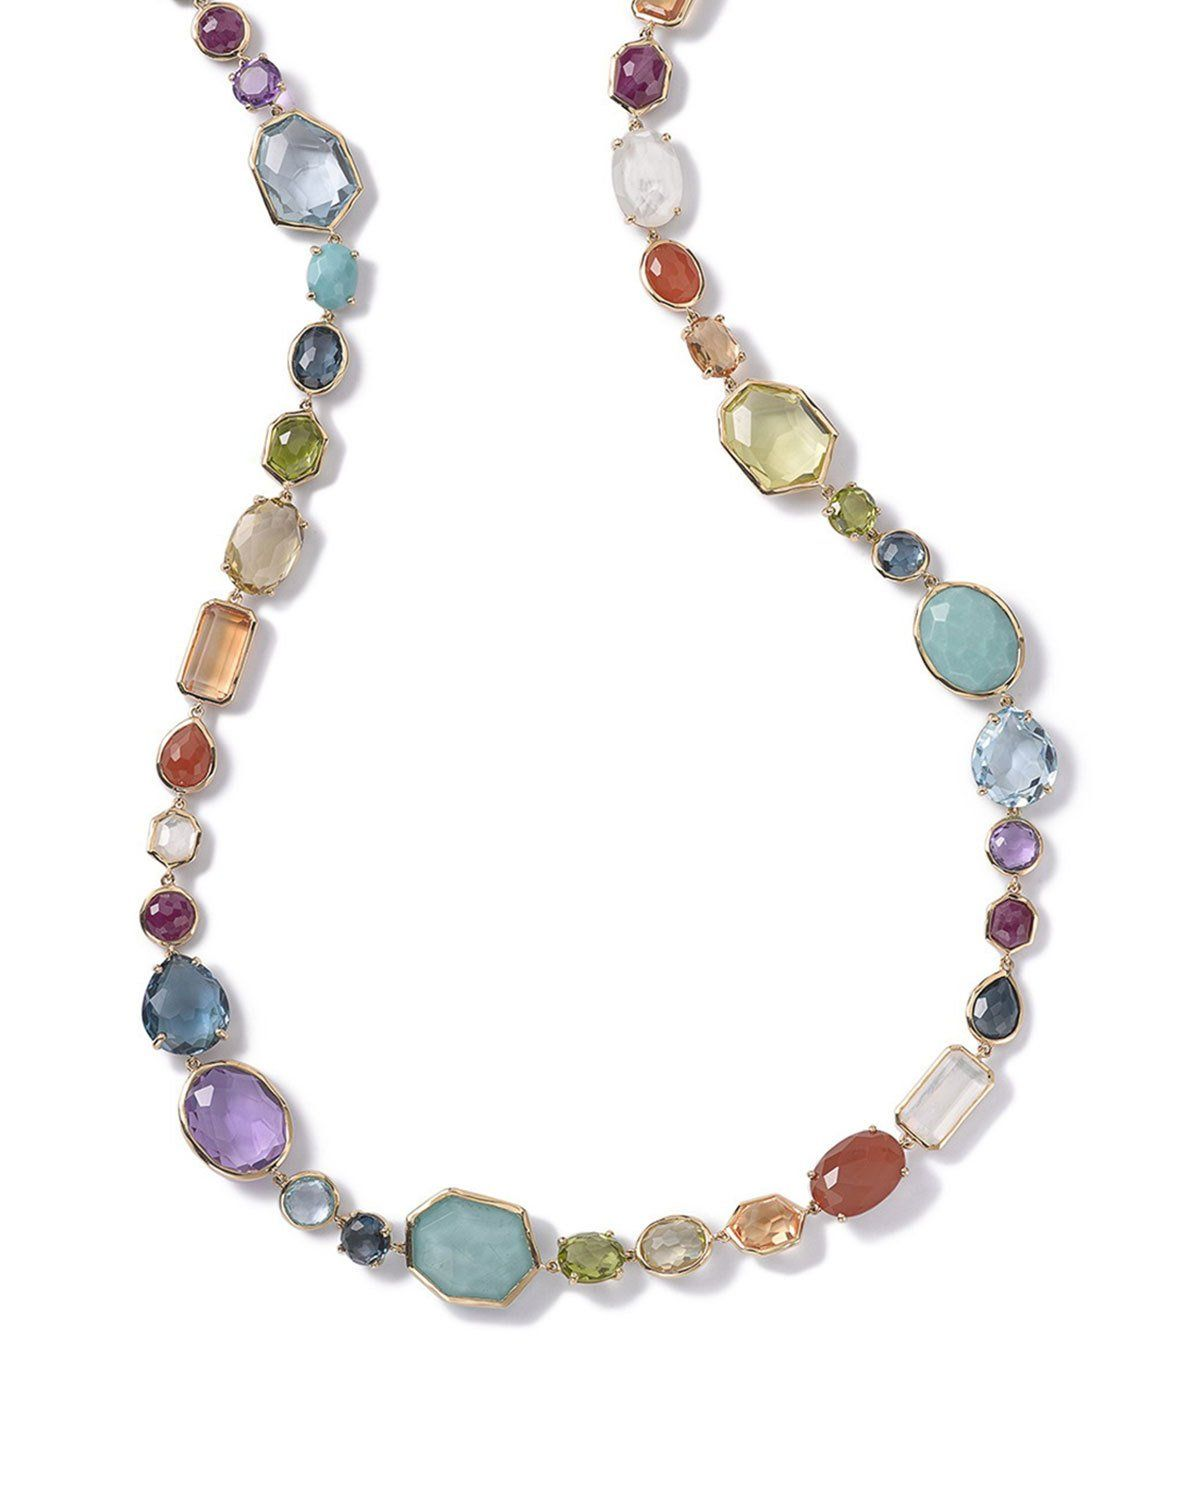 fe65529cf03080 18K Rock Candy Sofia Necklace in Summer Rainbow 39.5 | Products ...